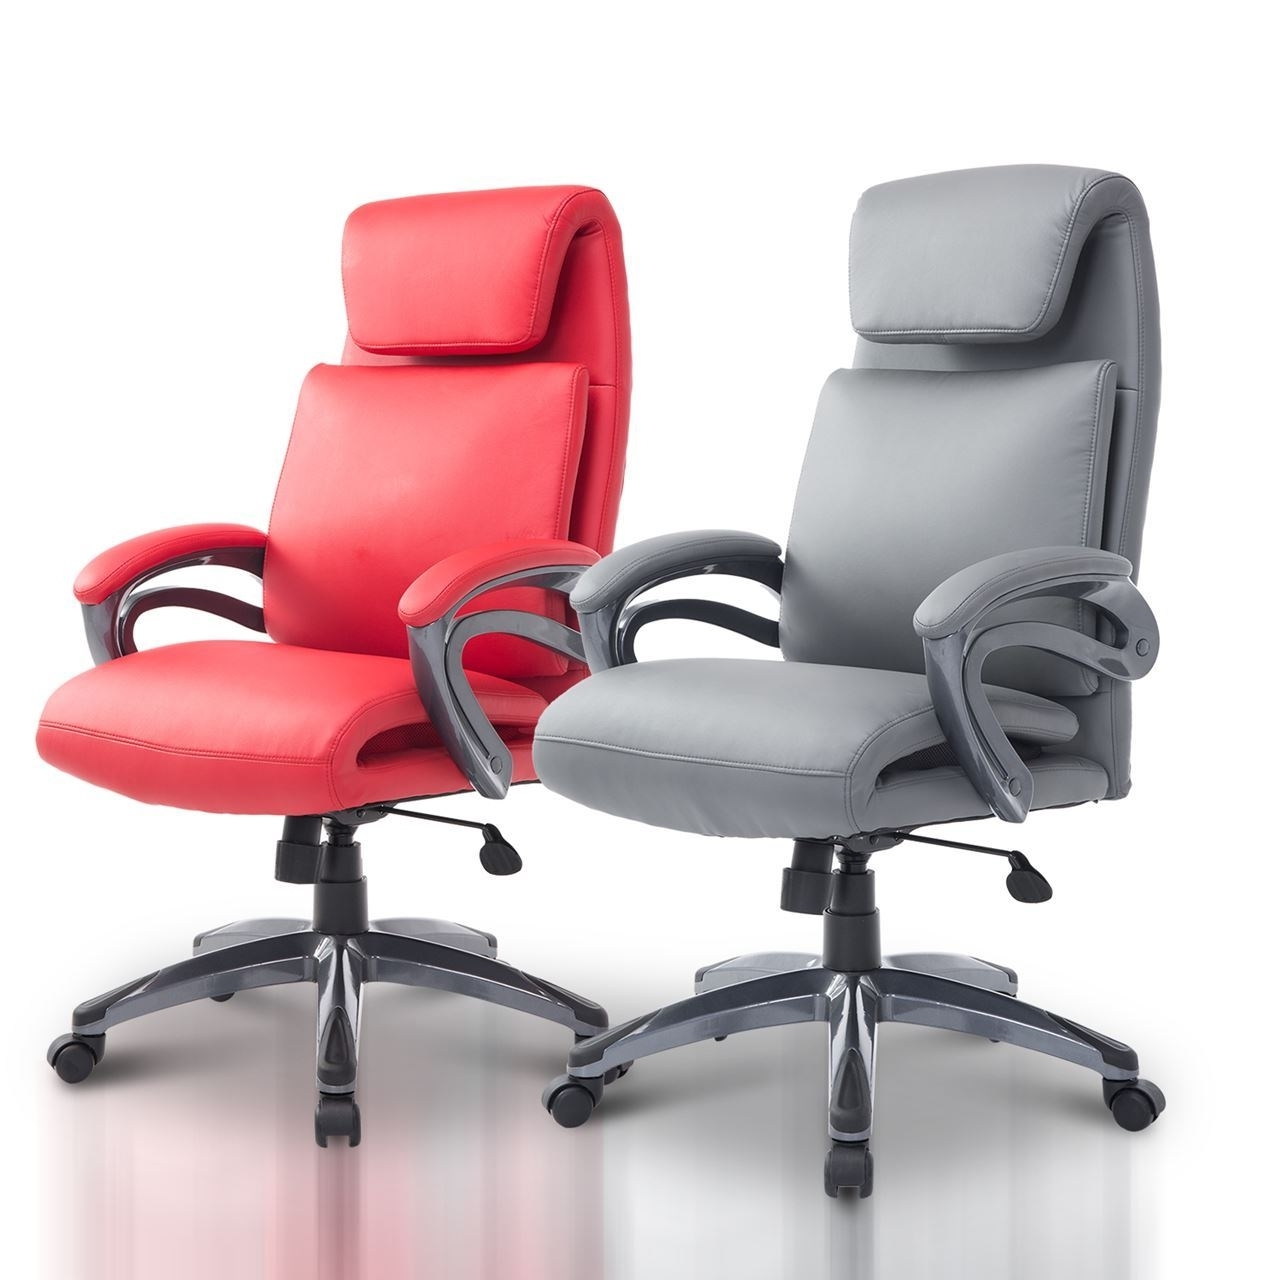 Ergonomic Executive Office Chair Pu Leather (View 2 of 20)